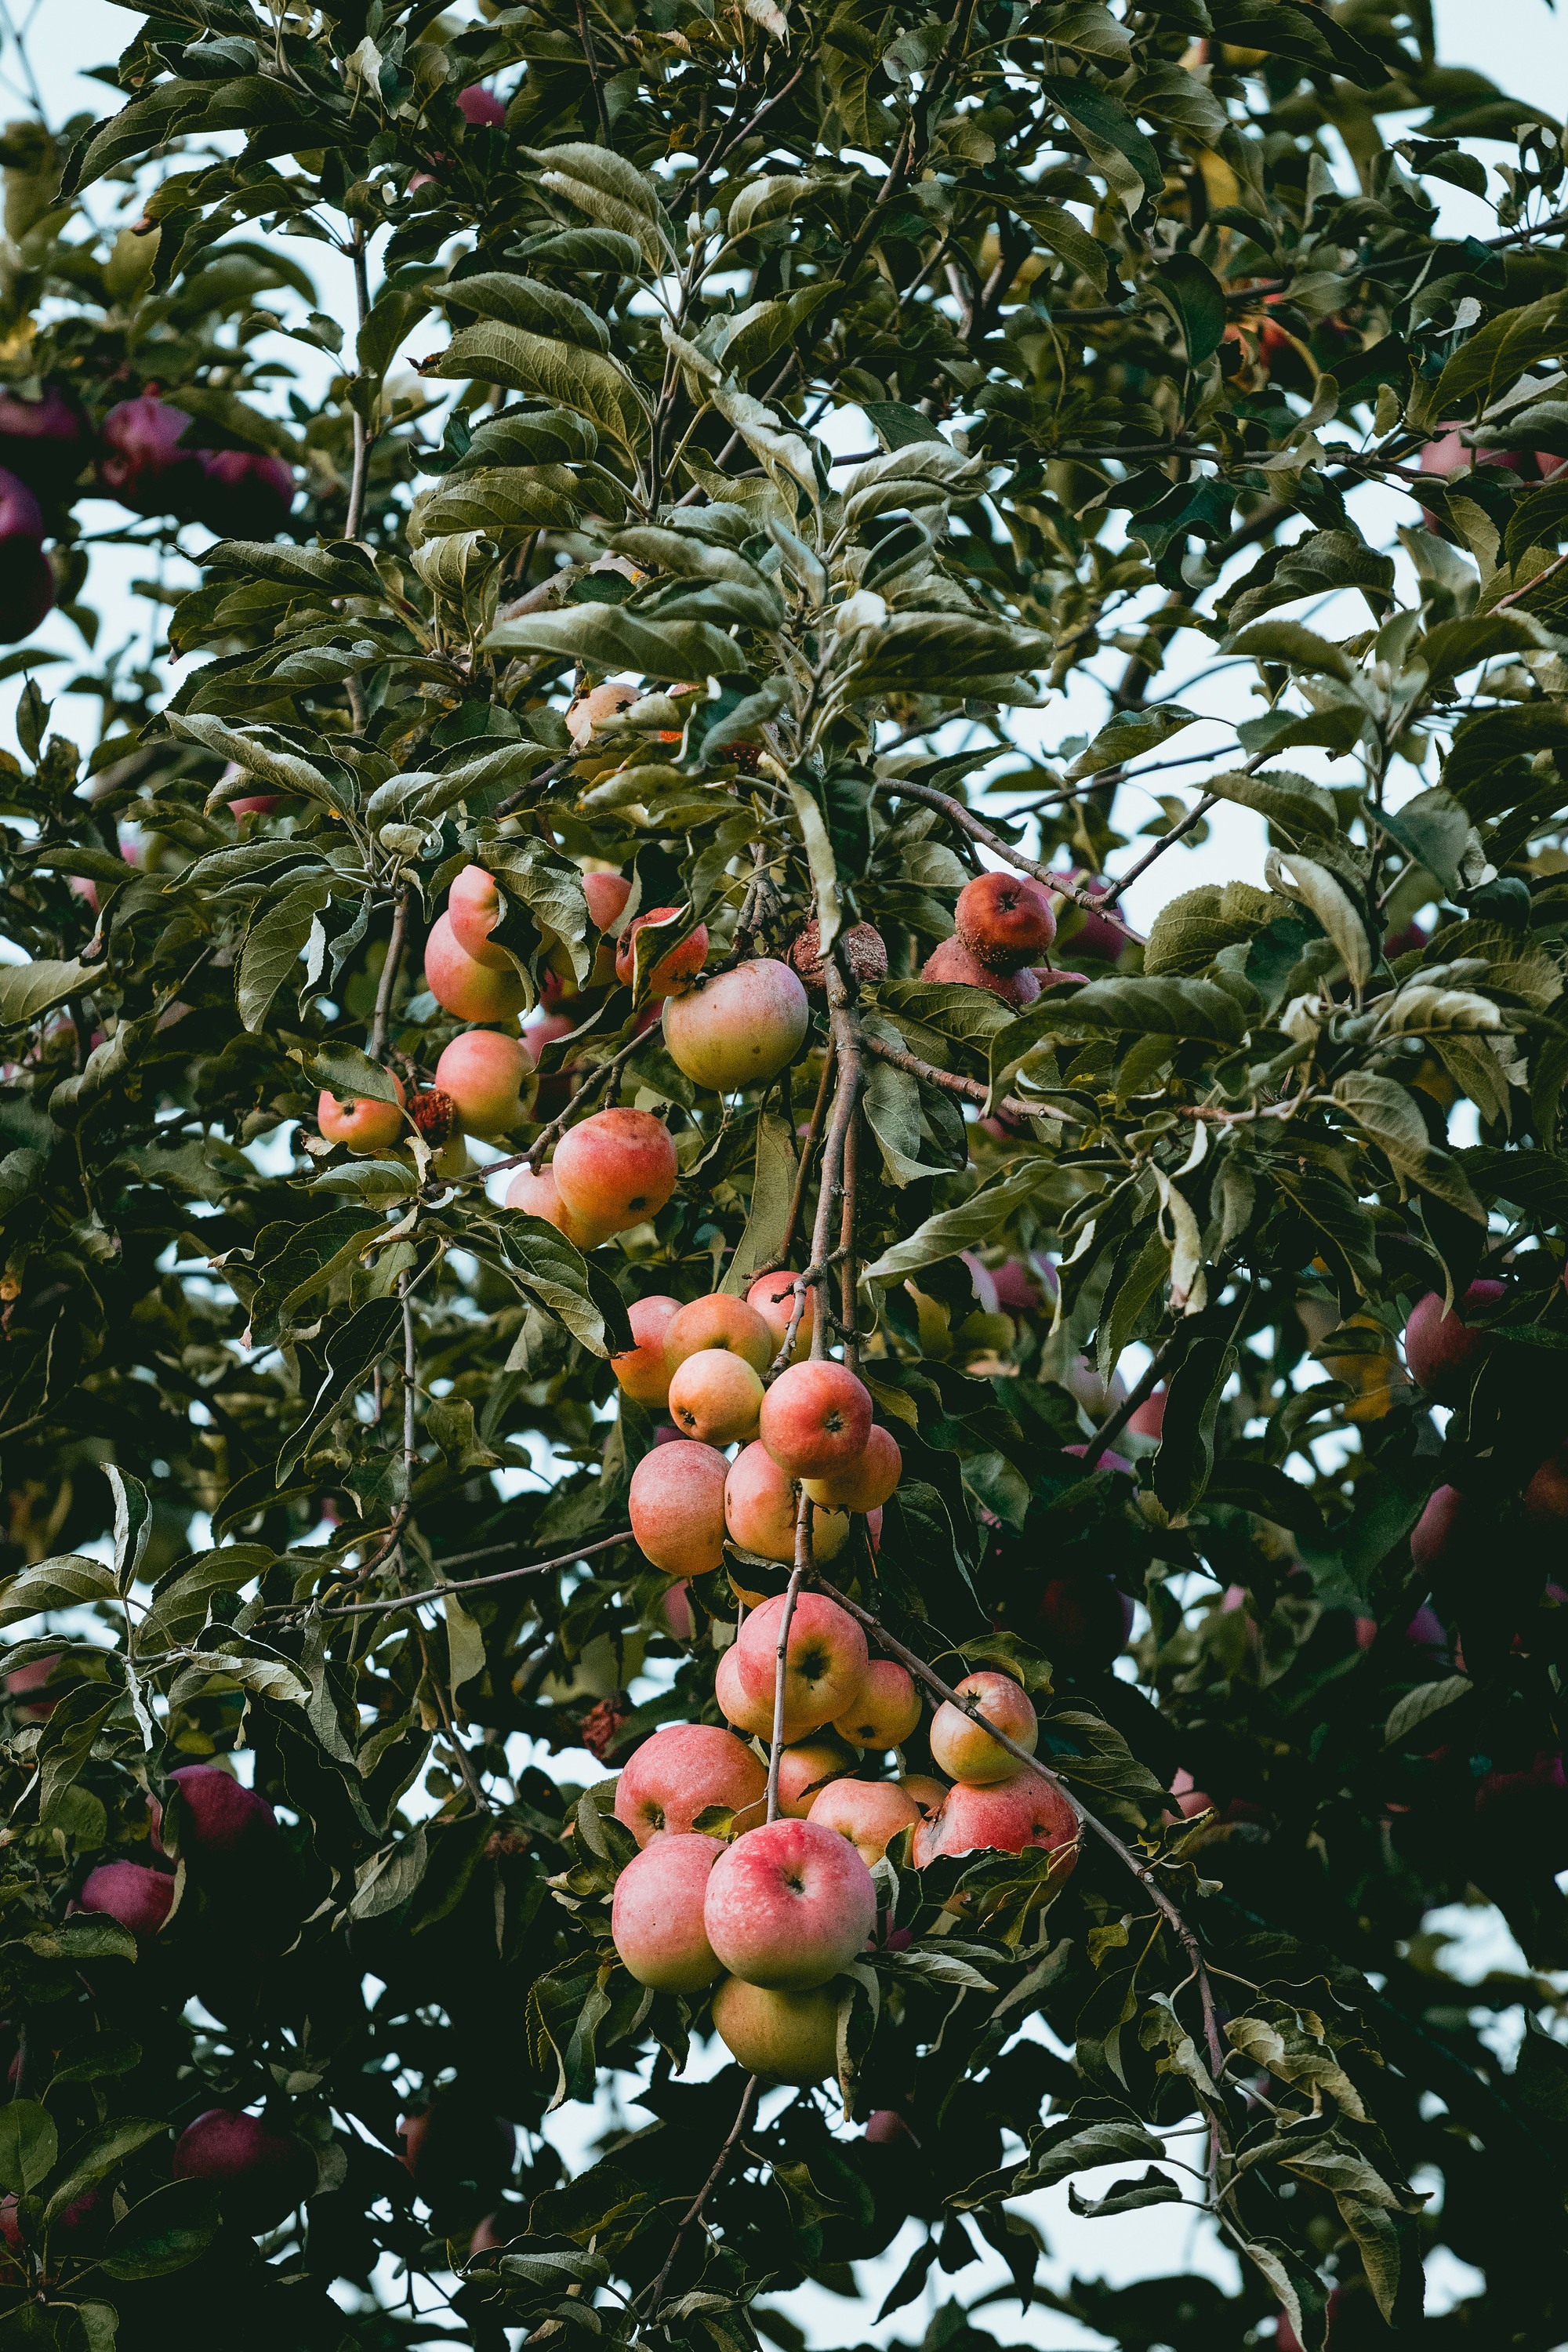 Benefits Of Planting Fruit Trees In The Fall